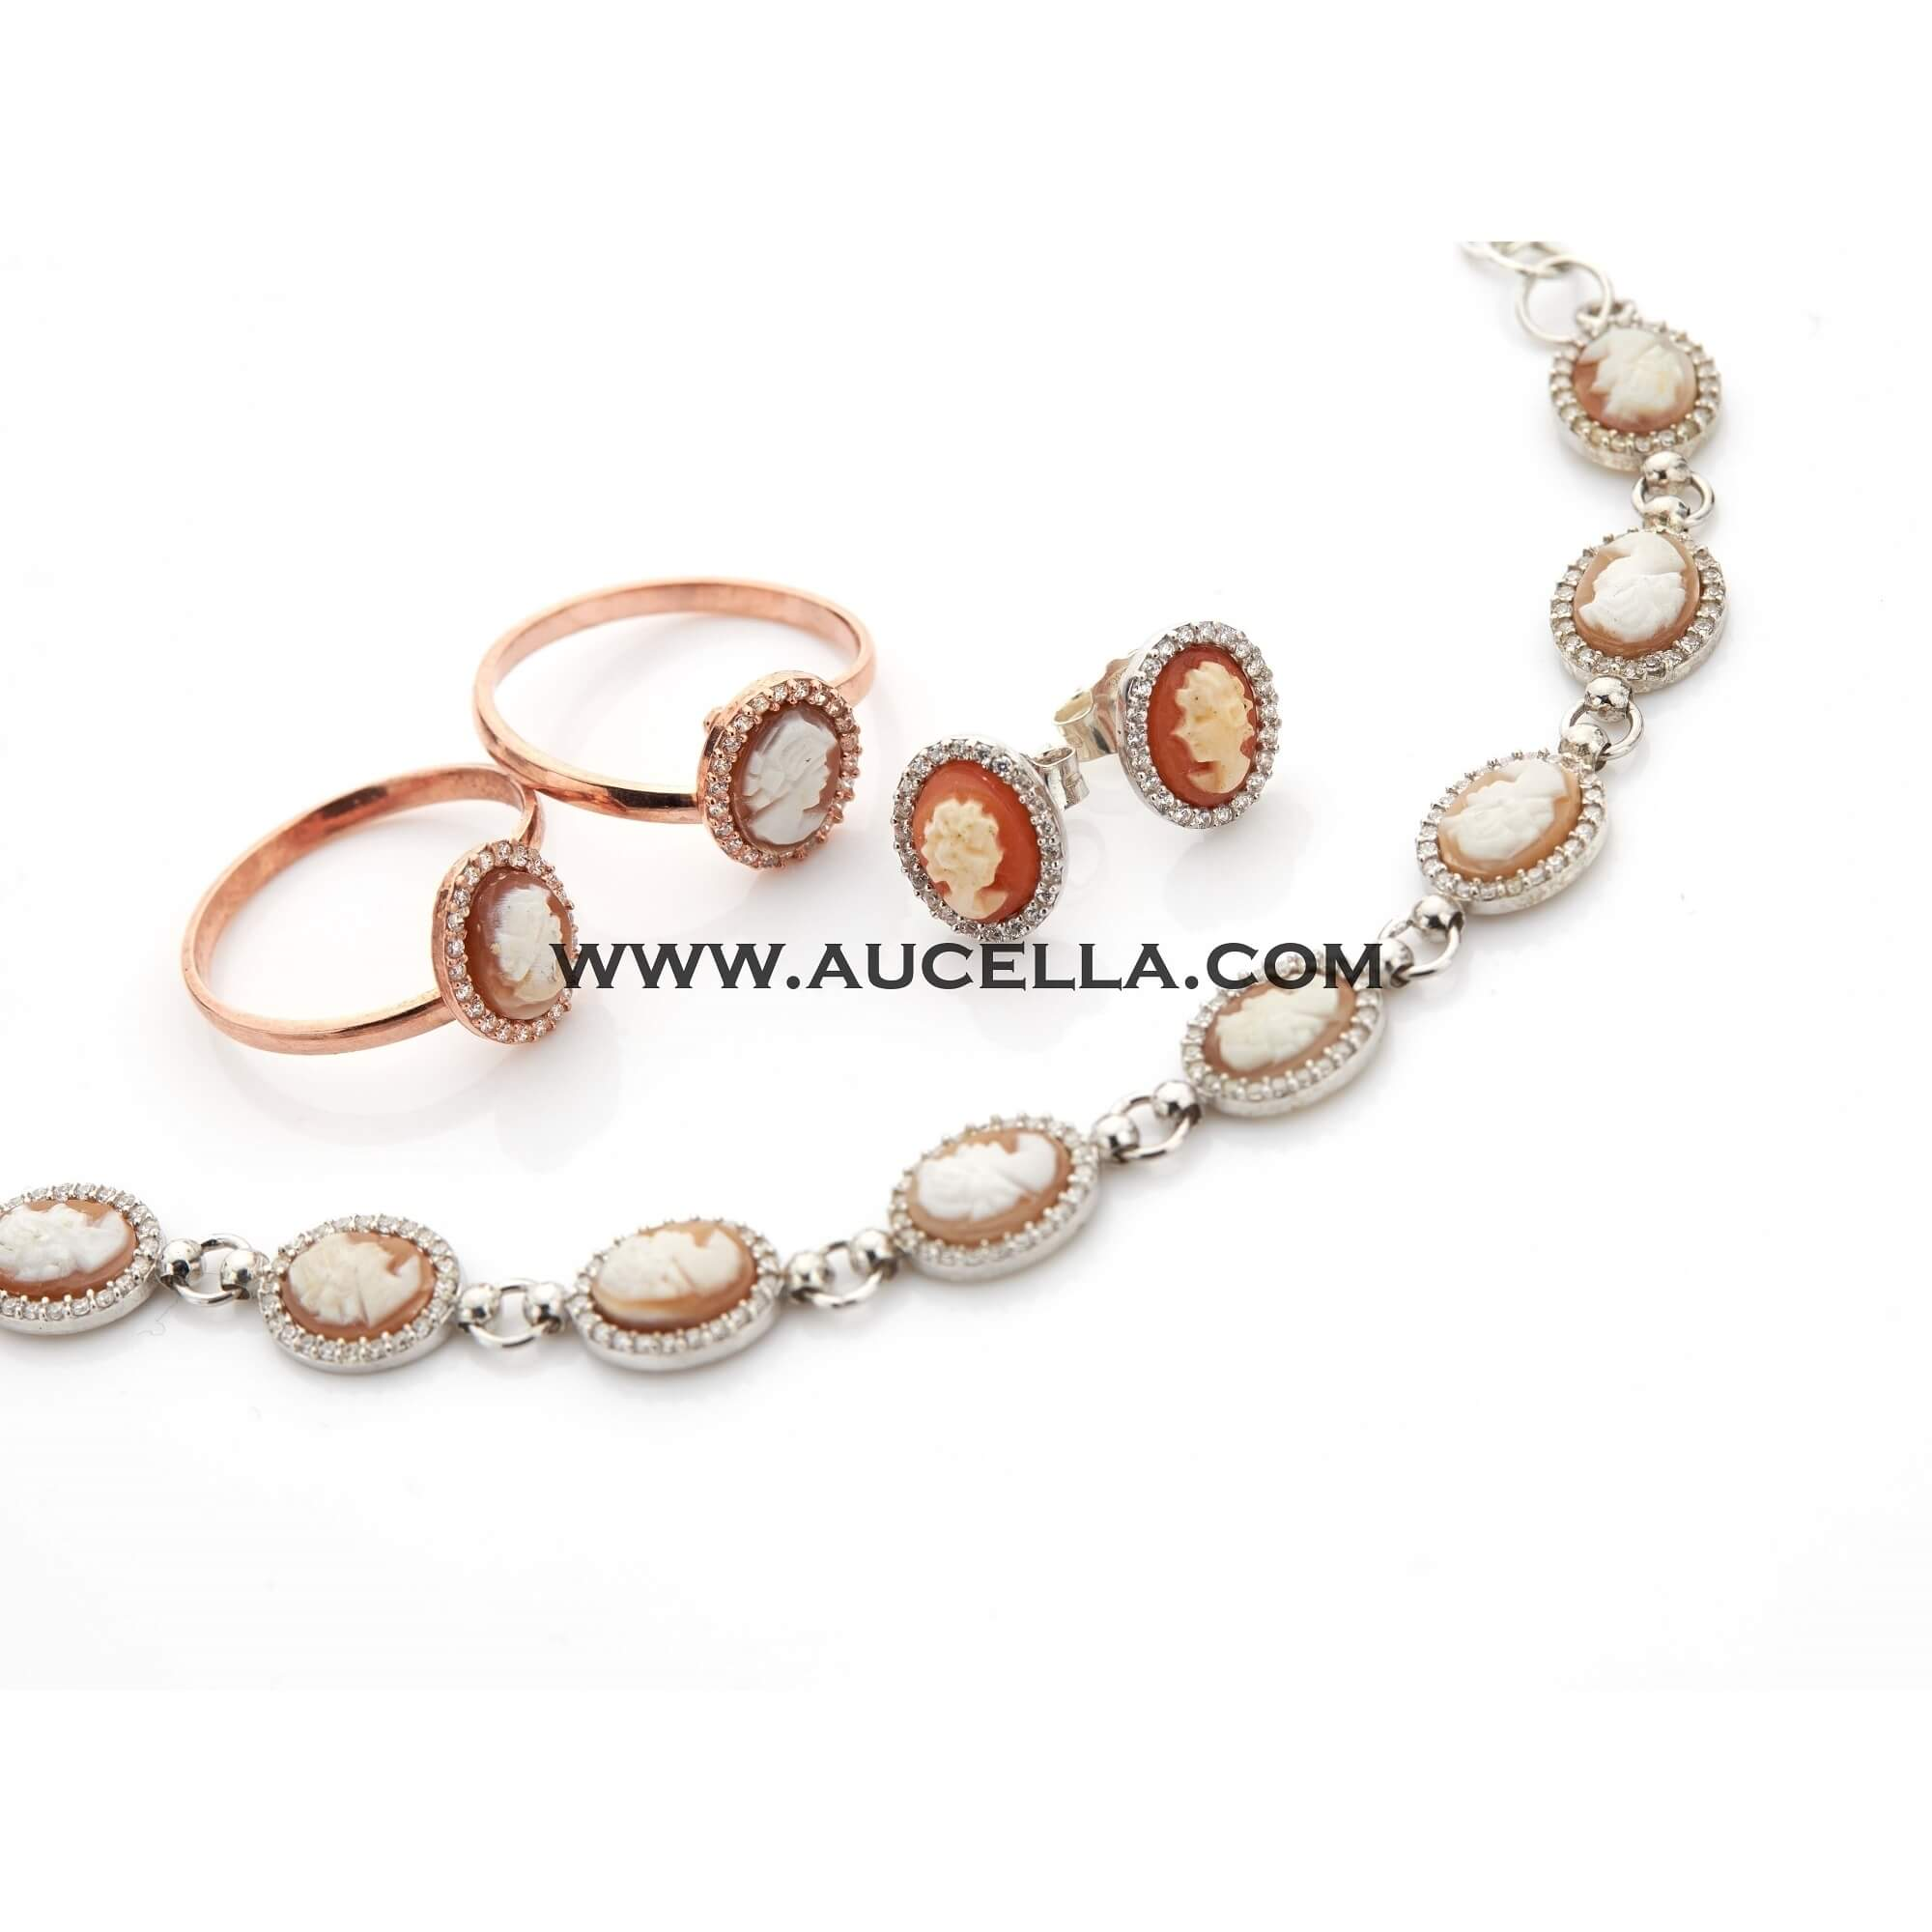 Silver bracelets with shell cameo